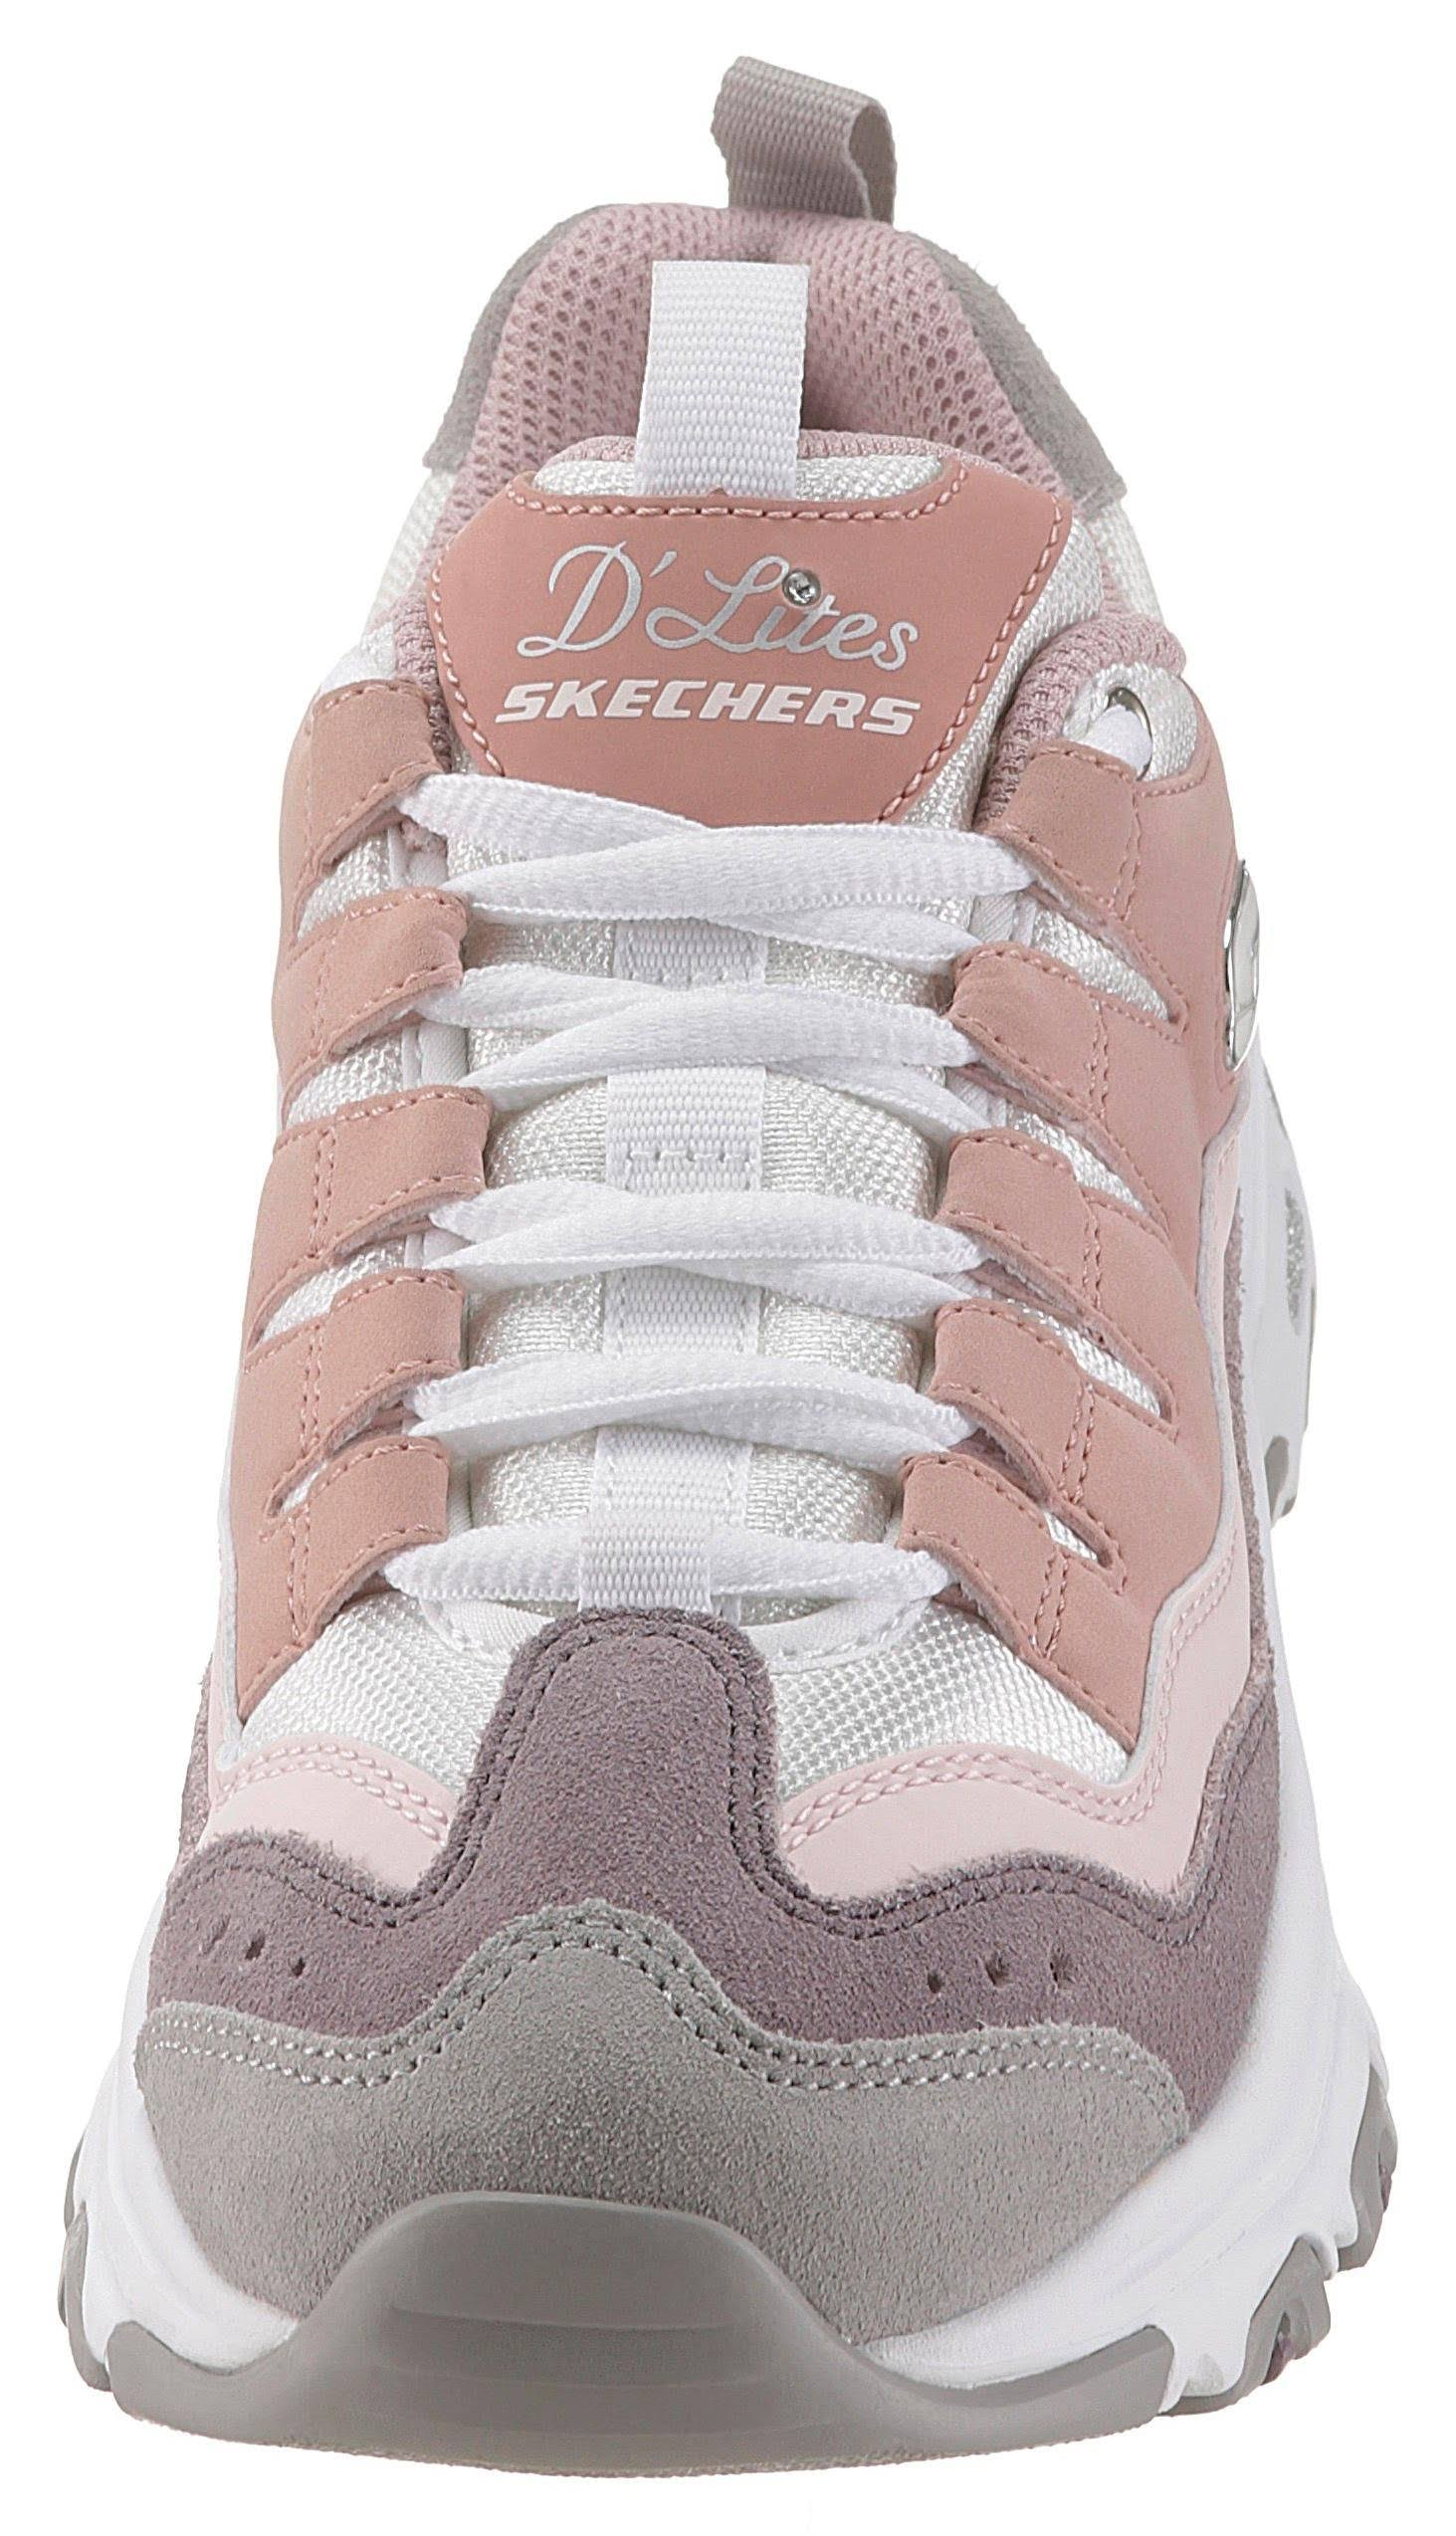 D Lites Skechers Sure Lage SneakersdamesRoze Thing S54RLqc3jA